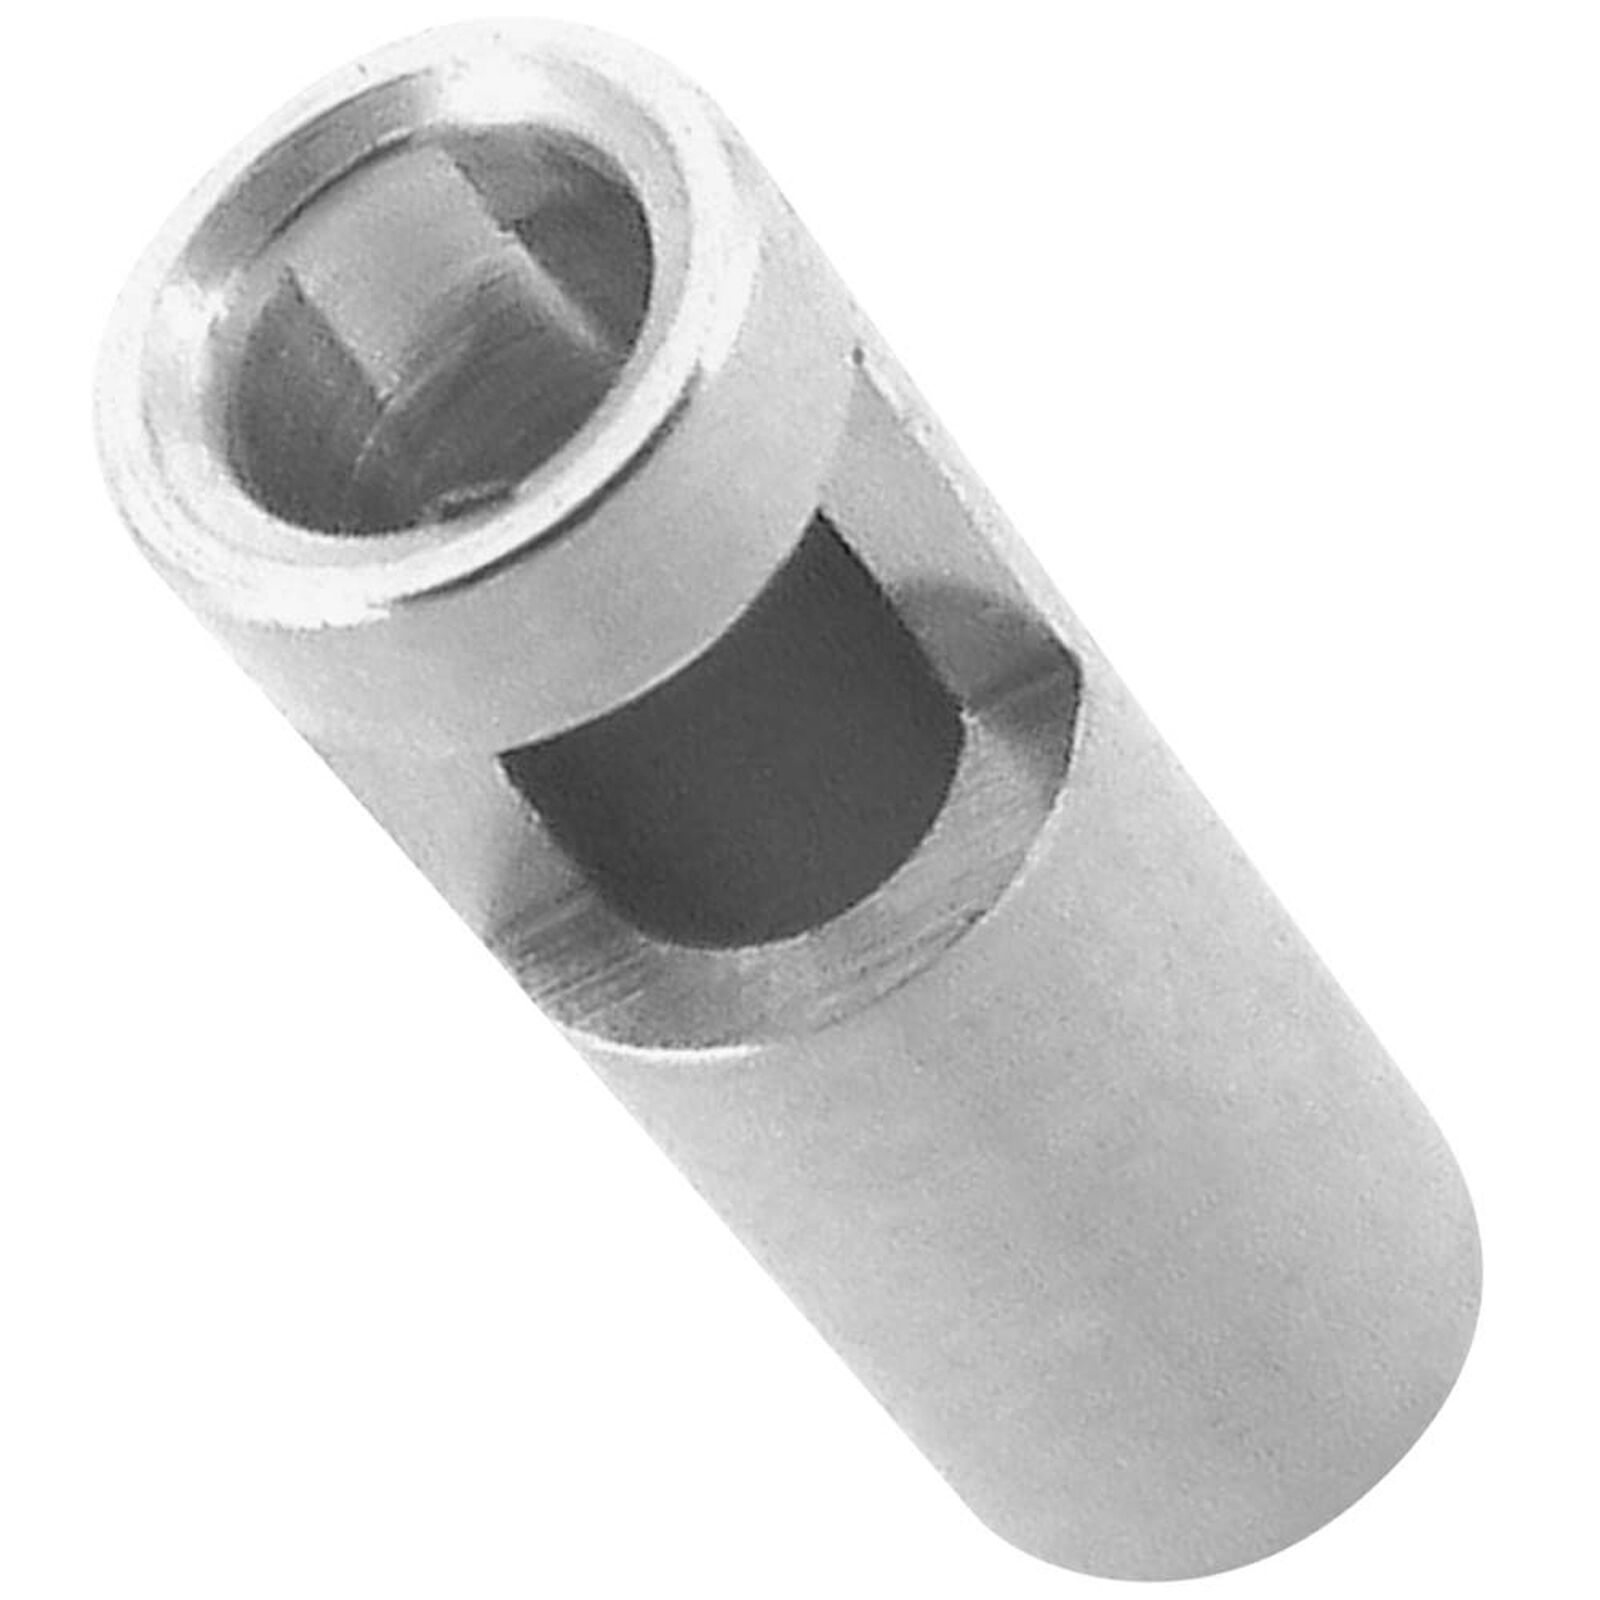 5mm To 1/8 Pinion Reducer Sleeve